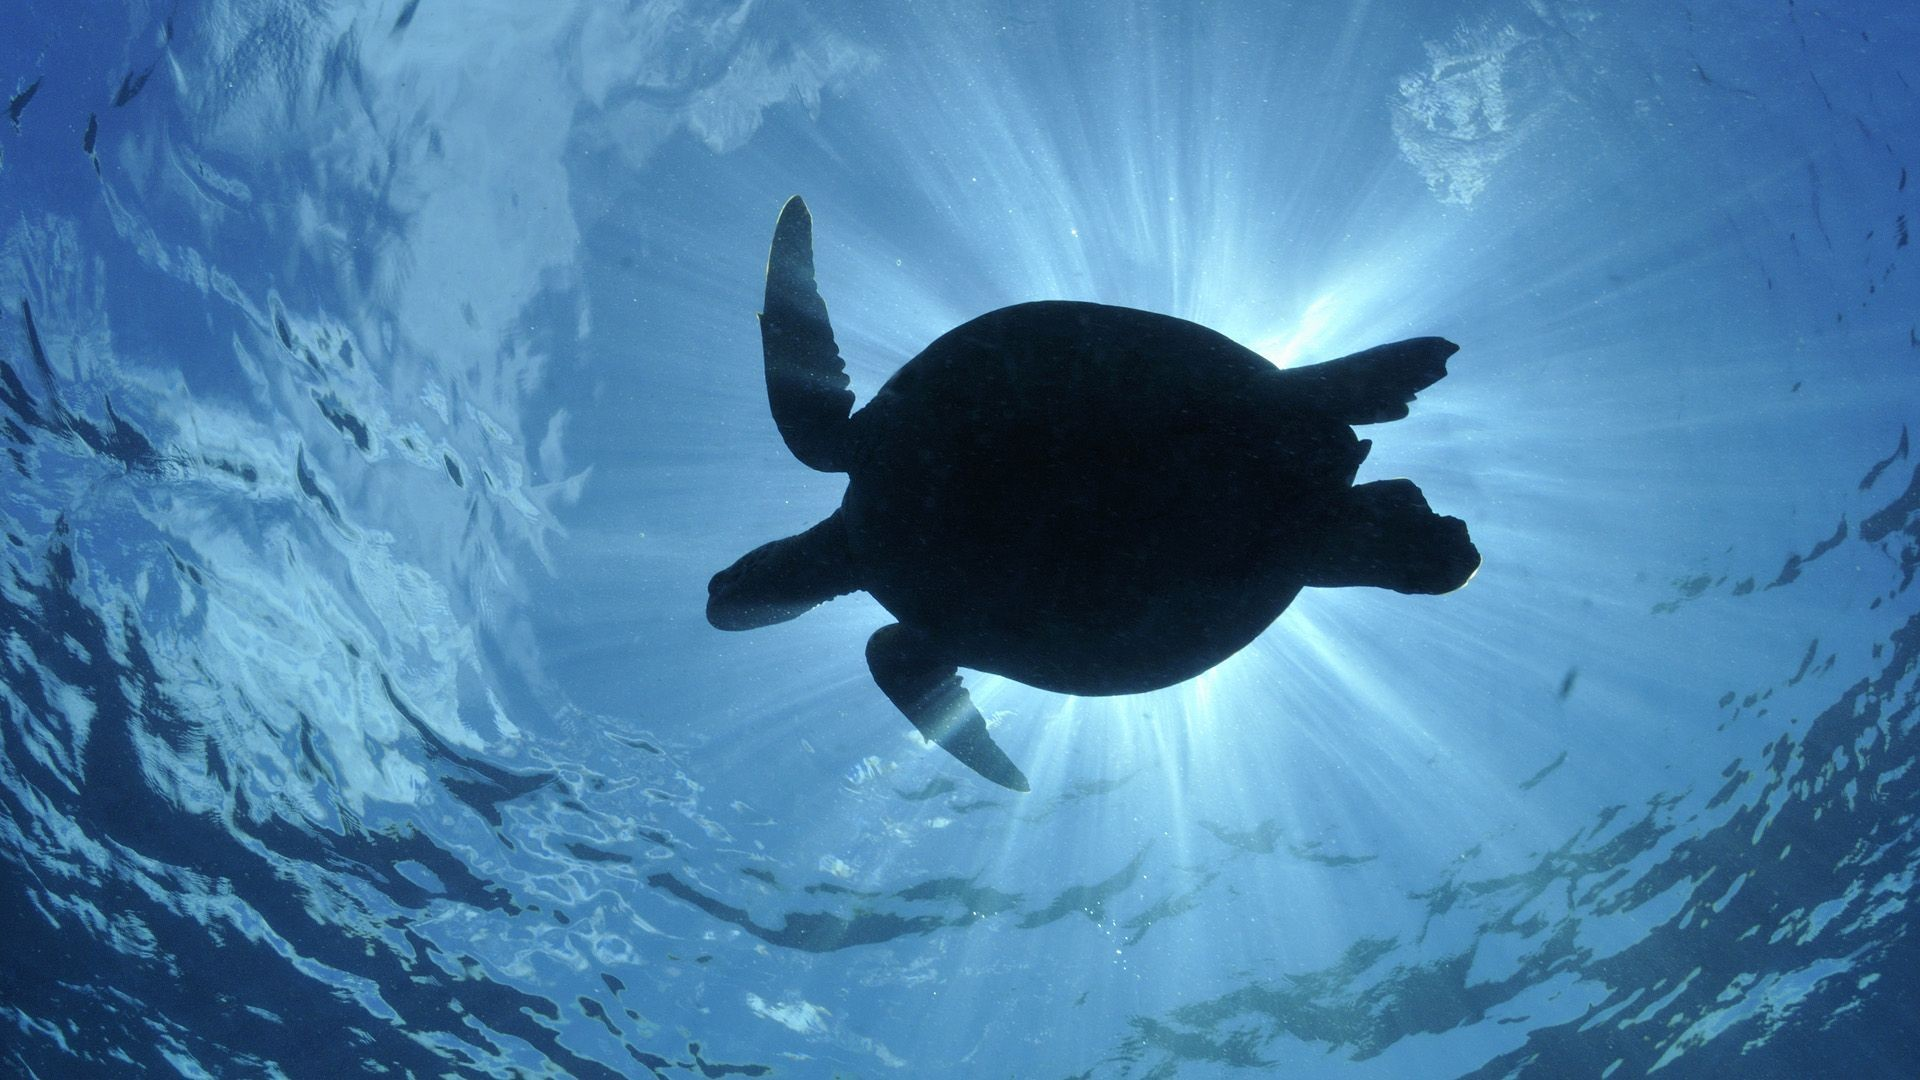 Turtle Wallpaper ① Download Free Stunning Hd Backgrounds For